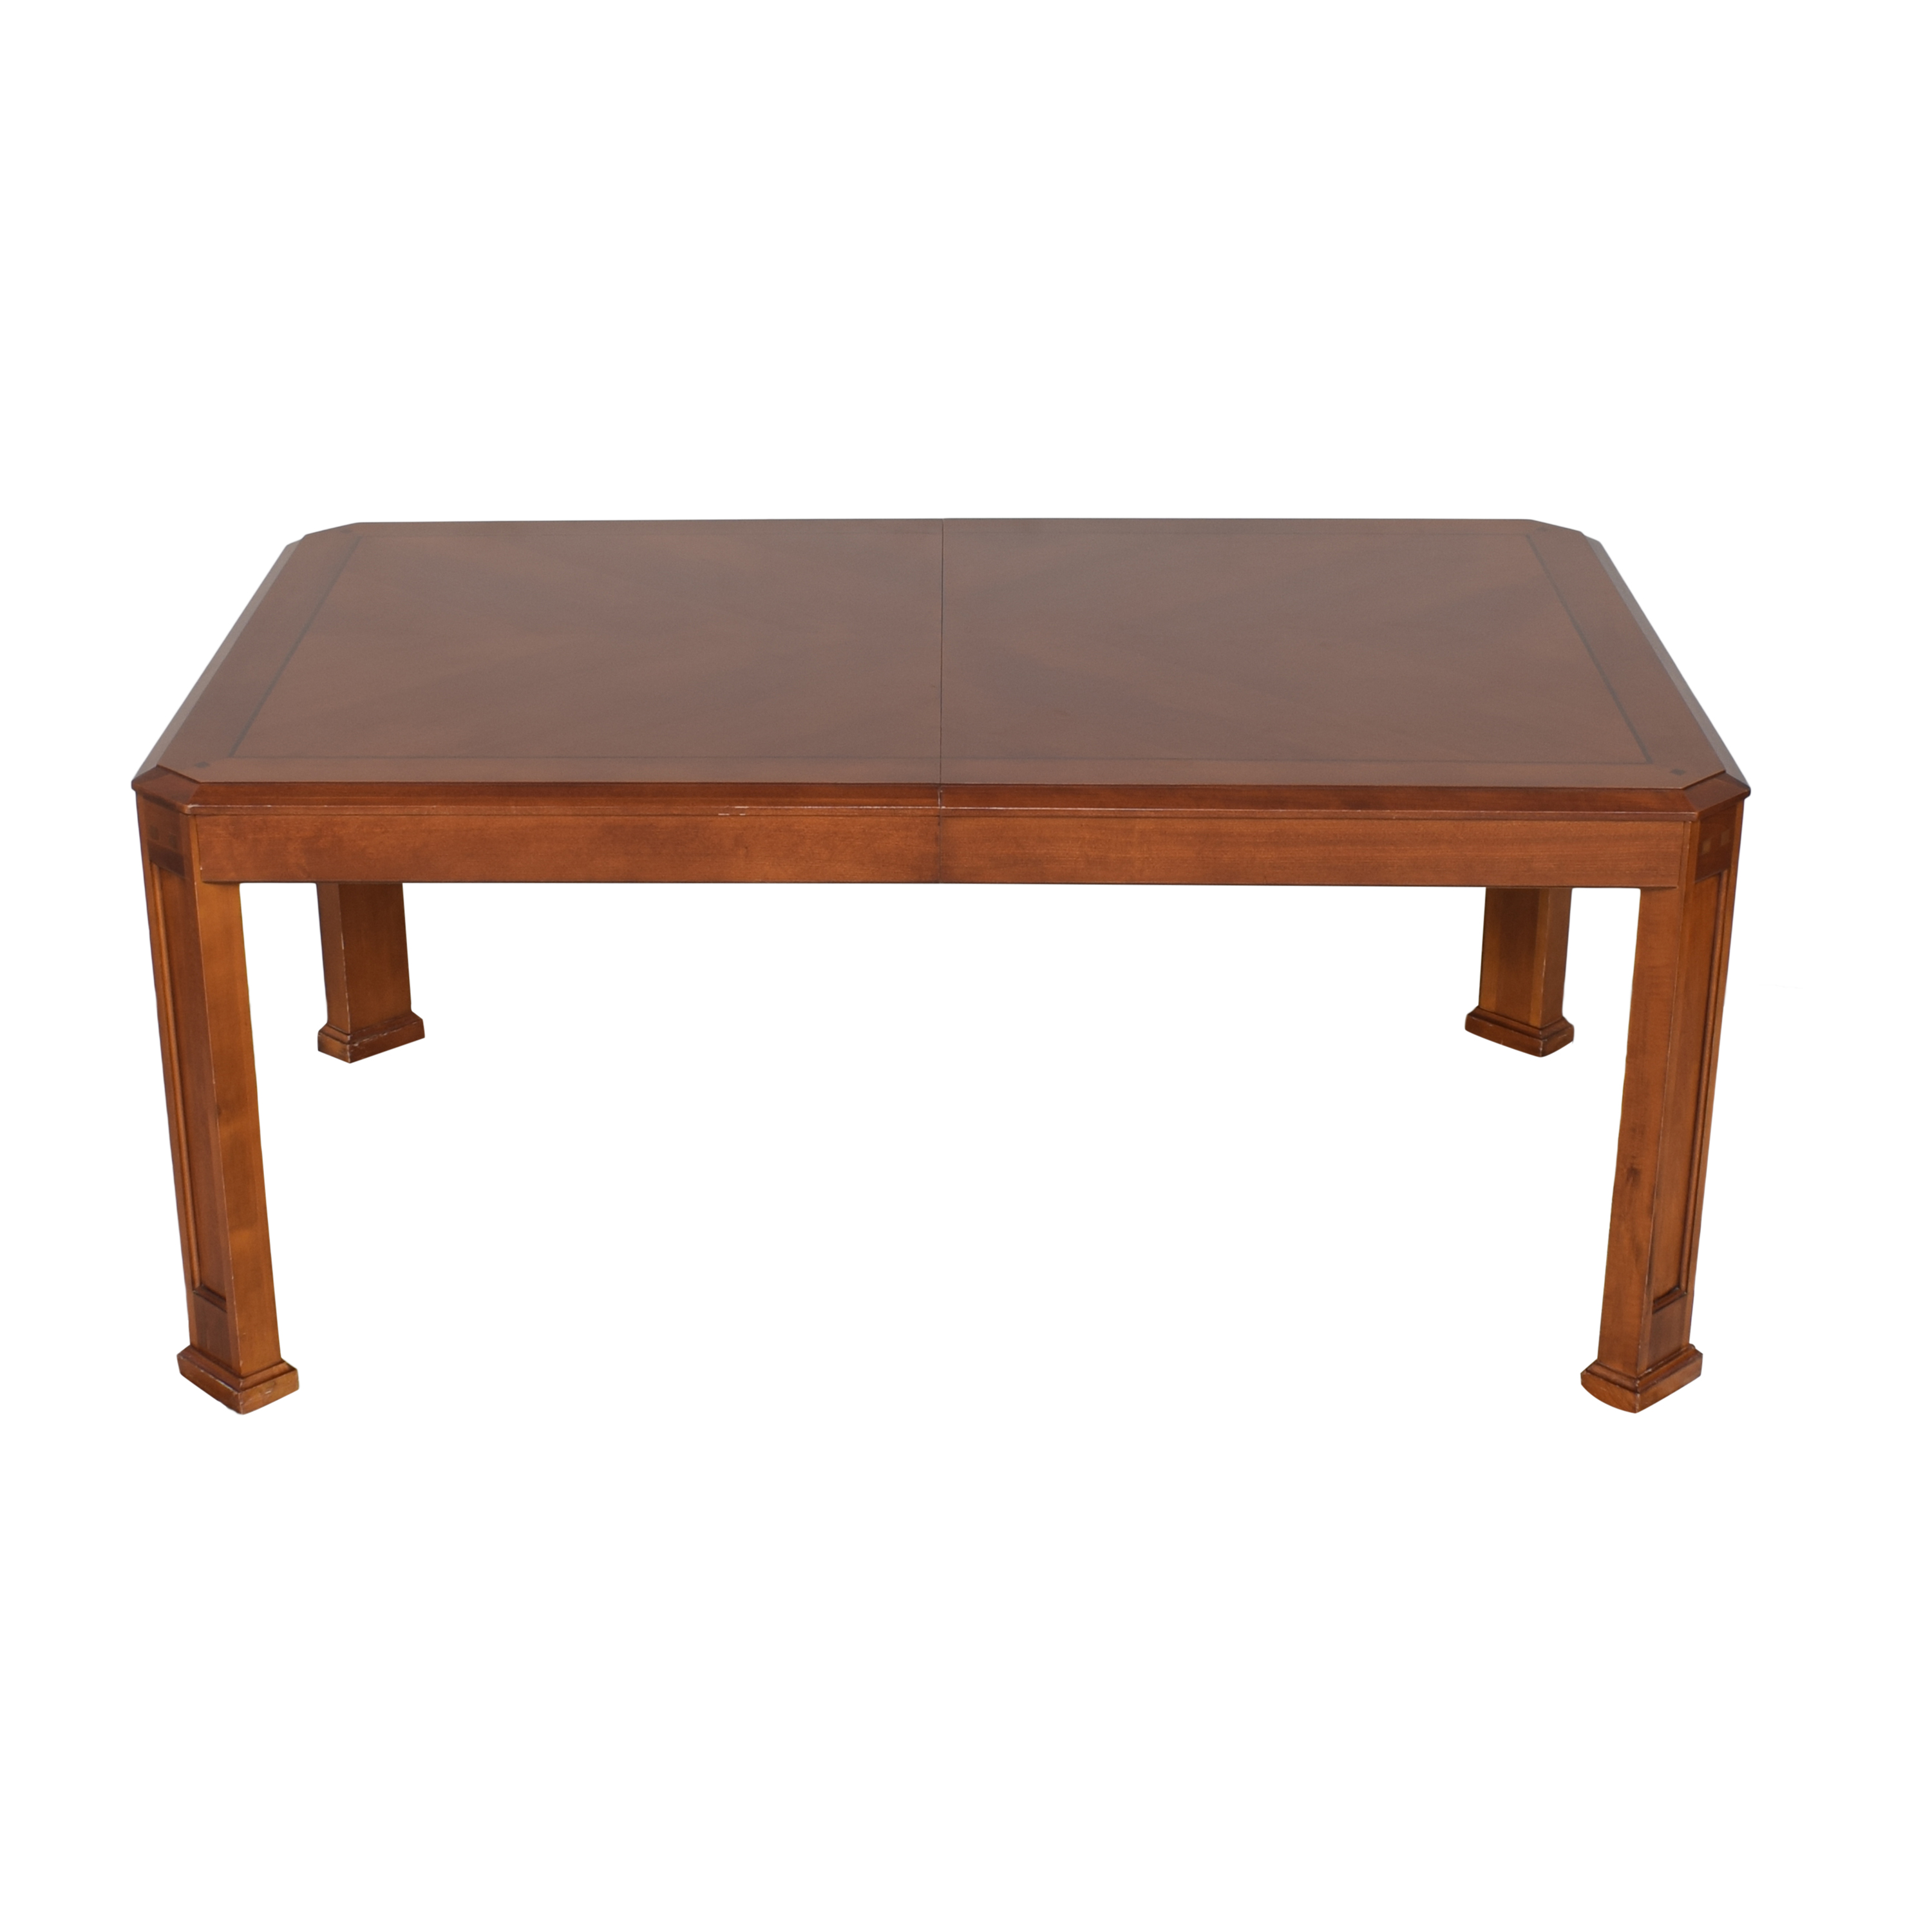 Thomasville Thomasville Extendable Dining Table second hand